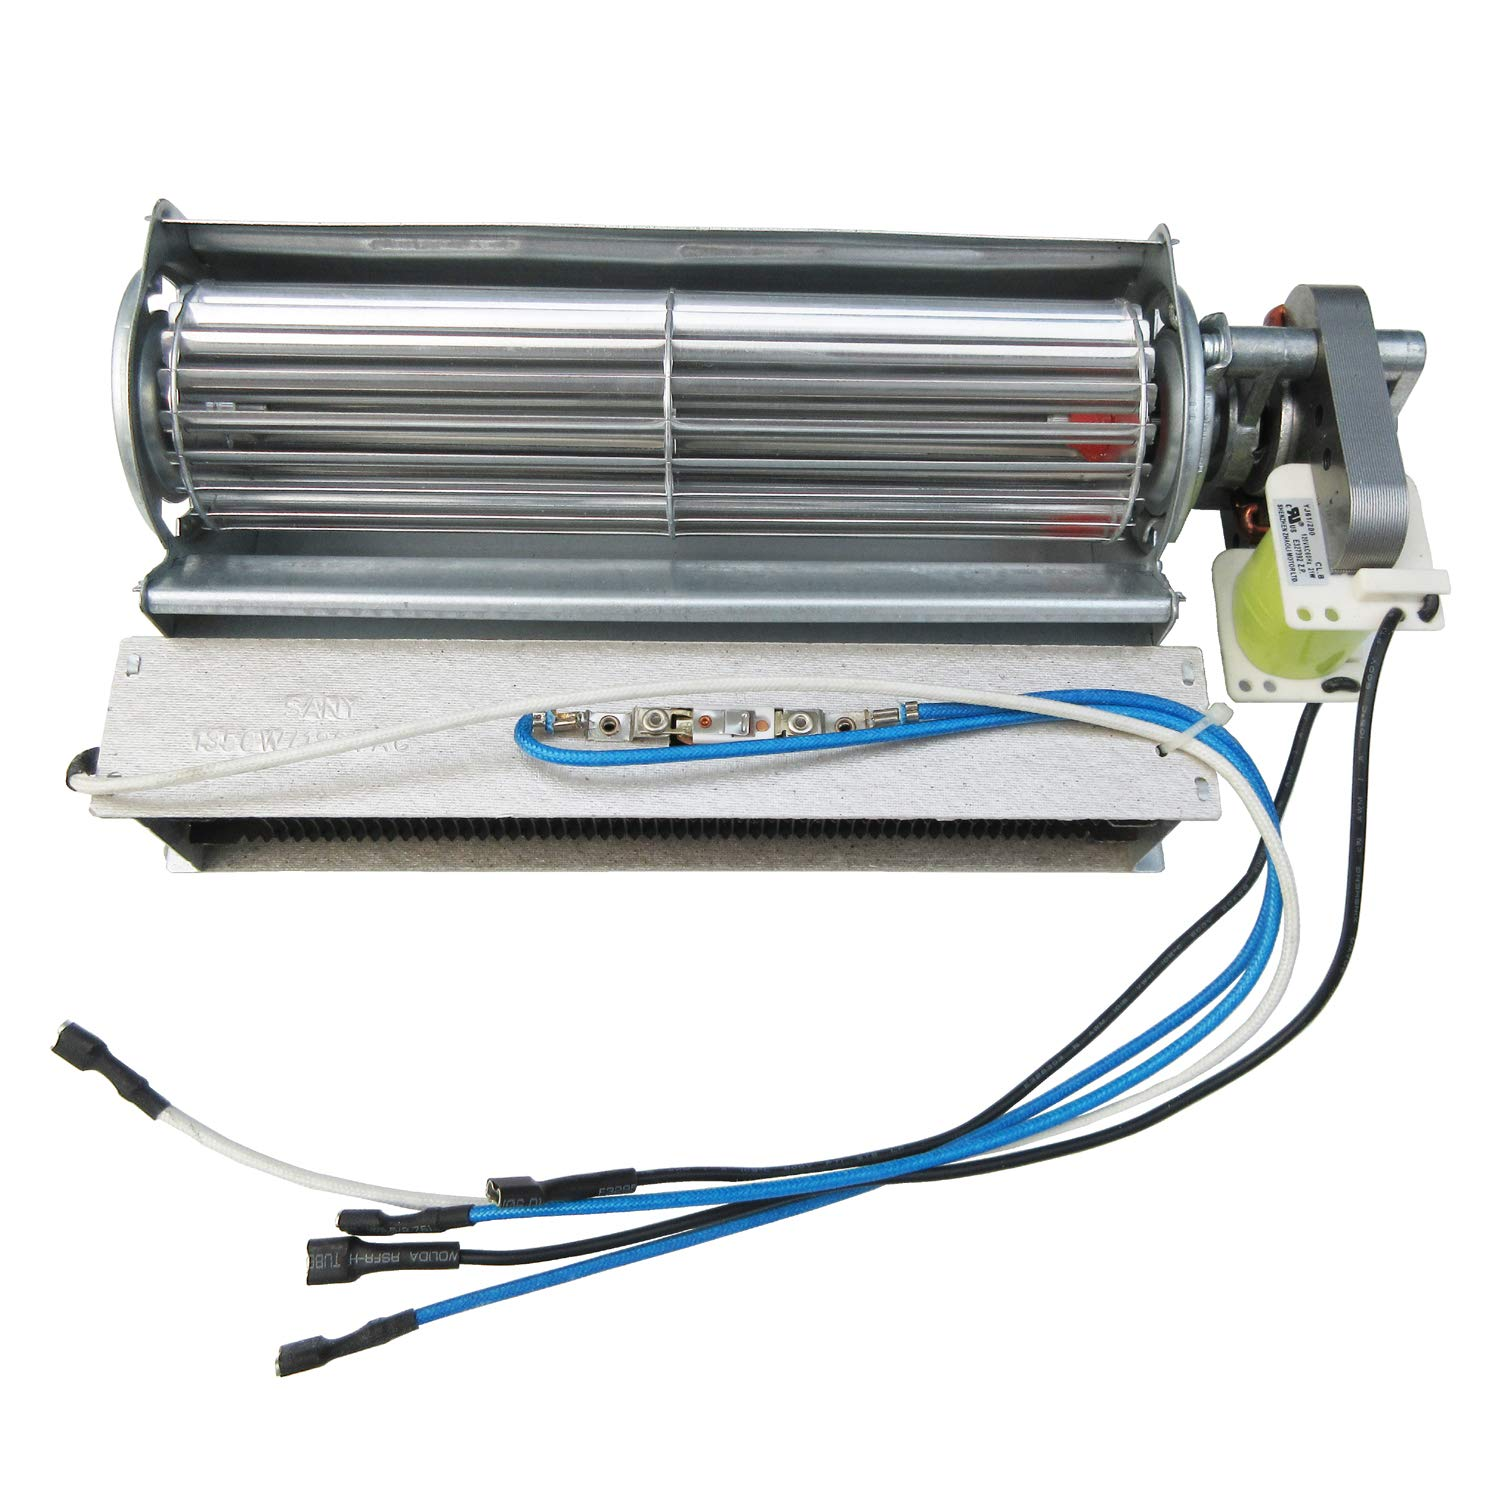 Direct Store Parts Kit Dn101 Replacement Fireplace Tanning Bed Wiring Blower Heating Element For Heat Surge Electric Home Kitchen